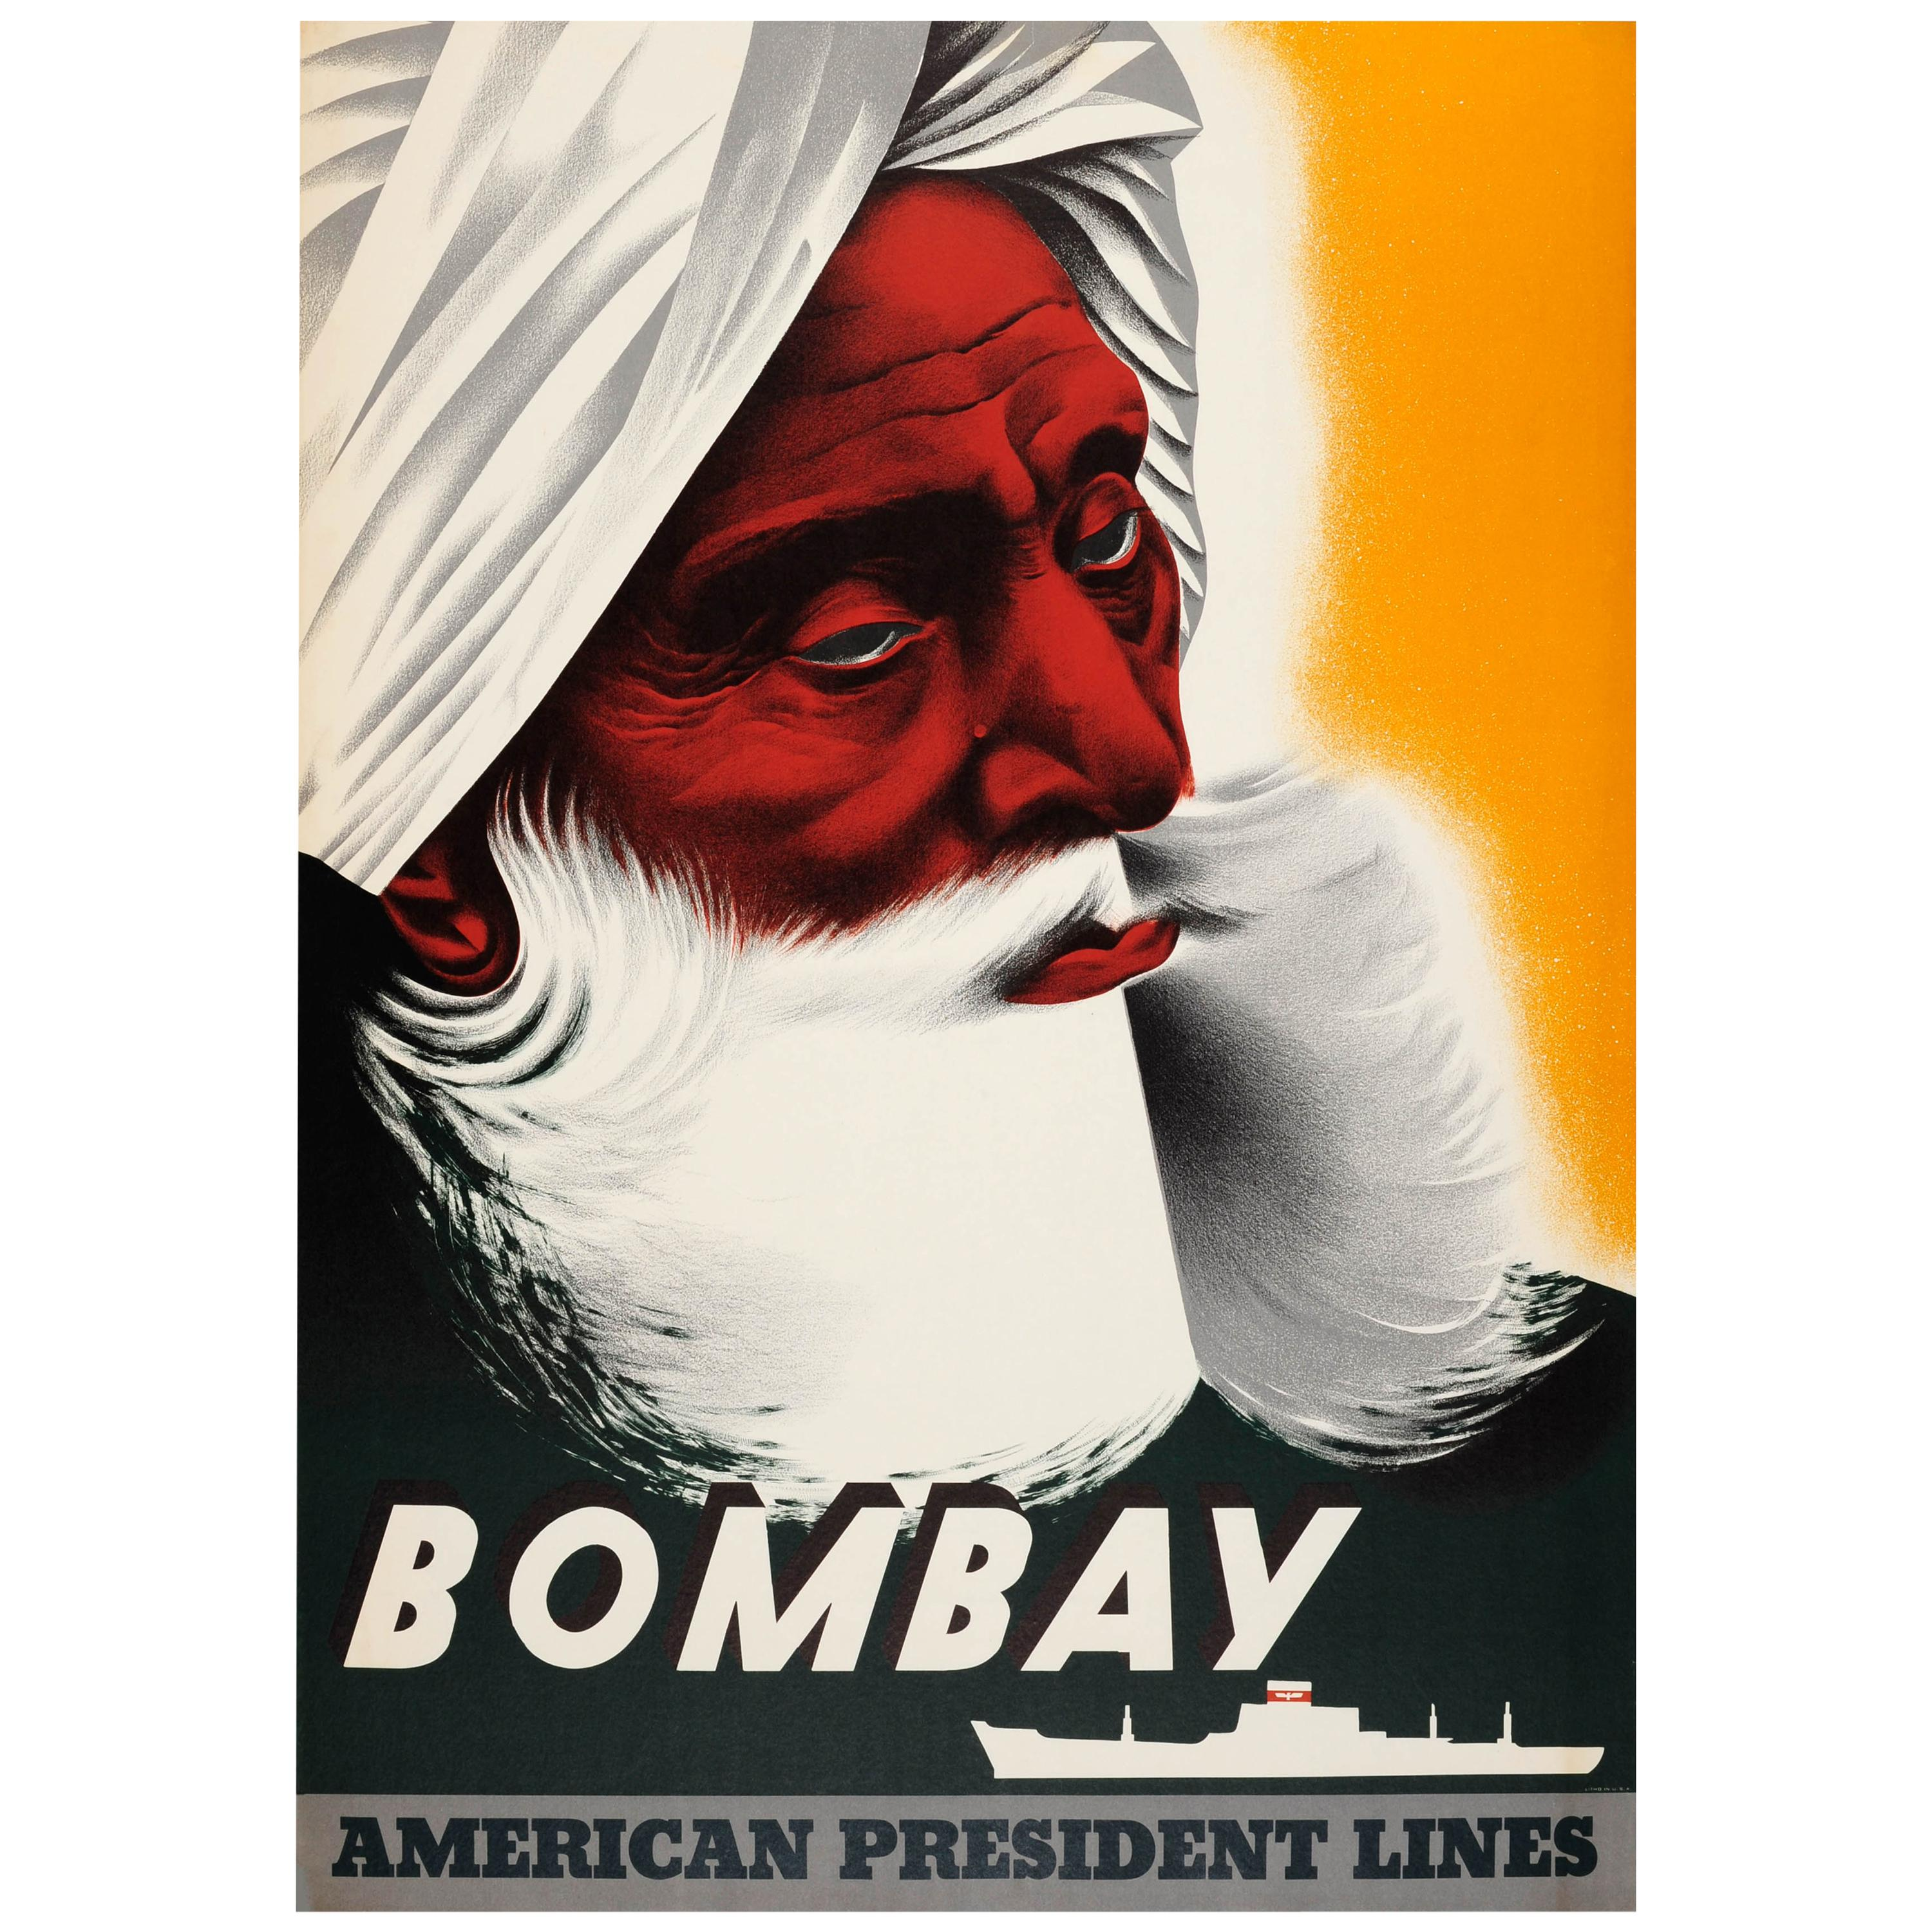 Original Vintage Cruise Ship Travel Poster Bombay India American President Lines